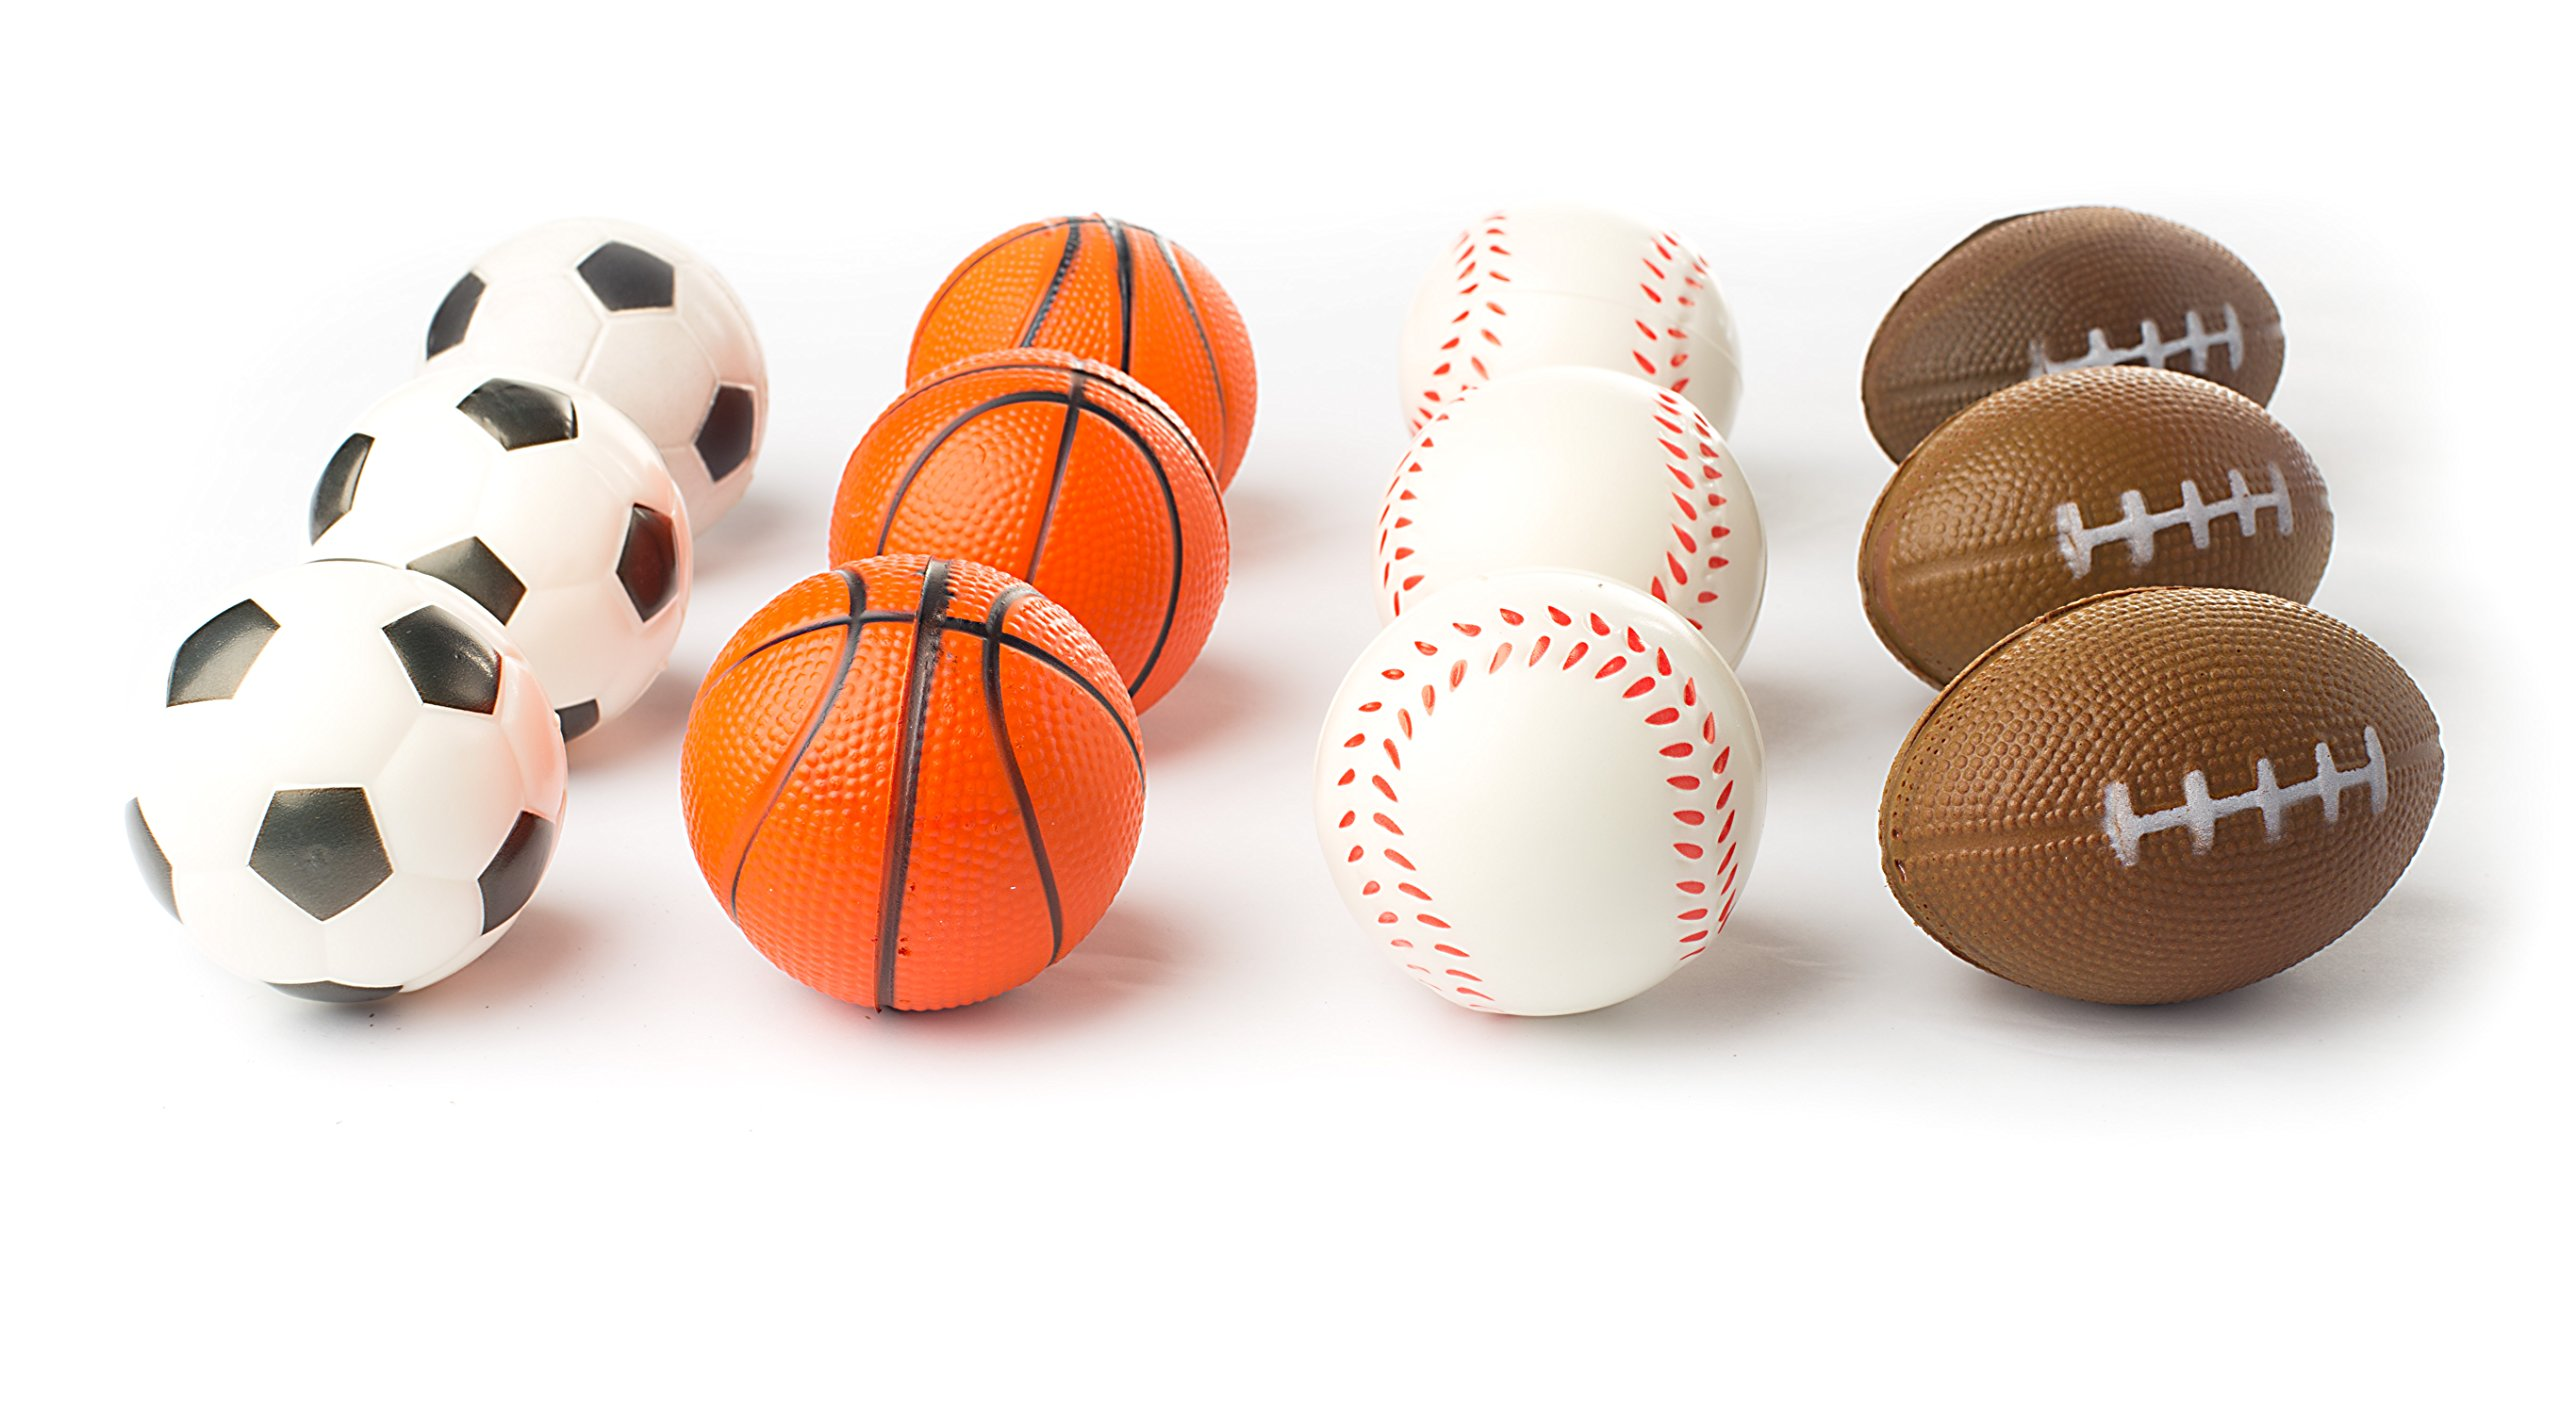 12 Sports Themed 2.5'' Stress Balls Squeeze Balls Foam for Stress Relief, Relaxation, Party Favor Toy, Gifts and Prizes (1 Dozen) Includes, Baseballs, Basketballs, Soccer Balls, and Footballs